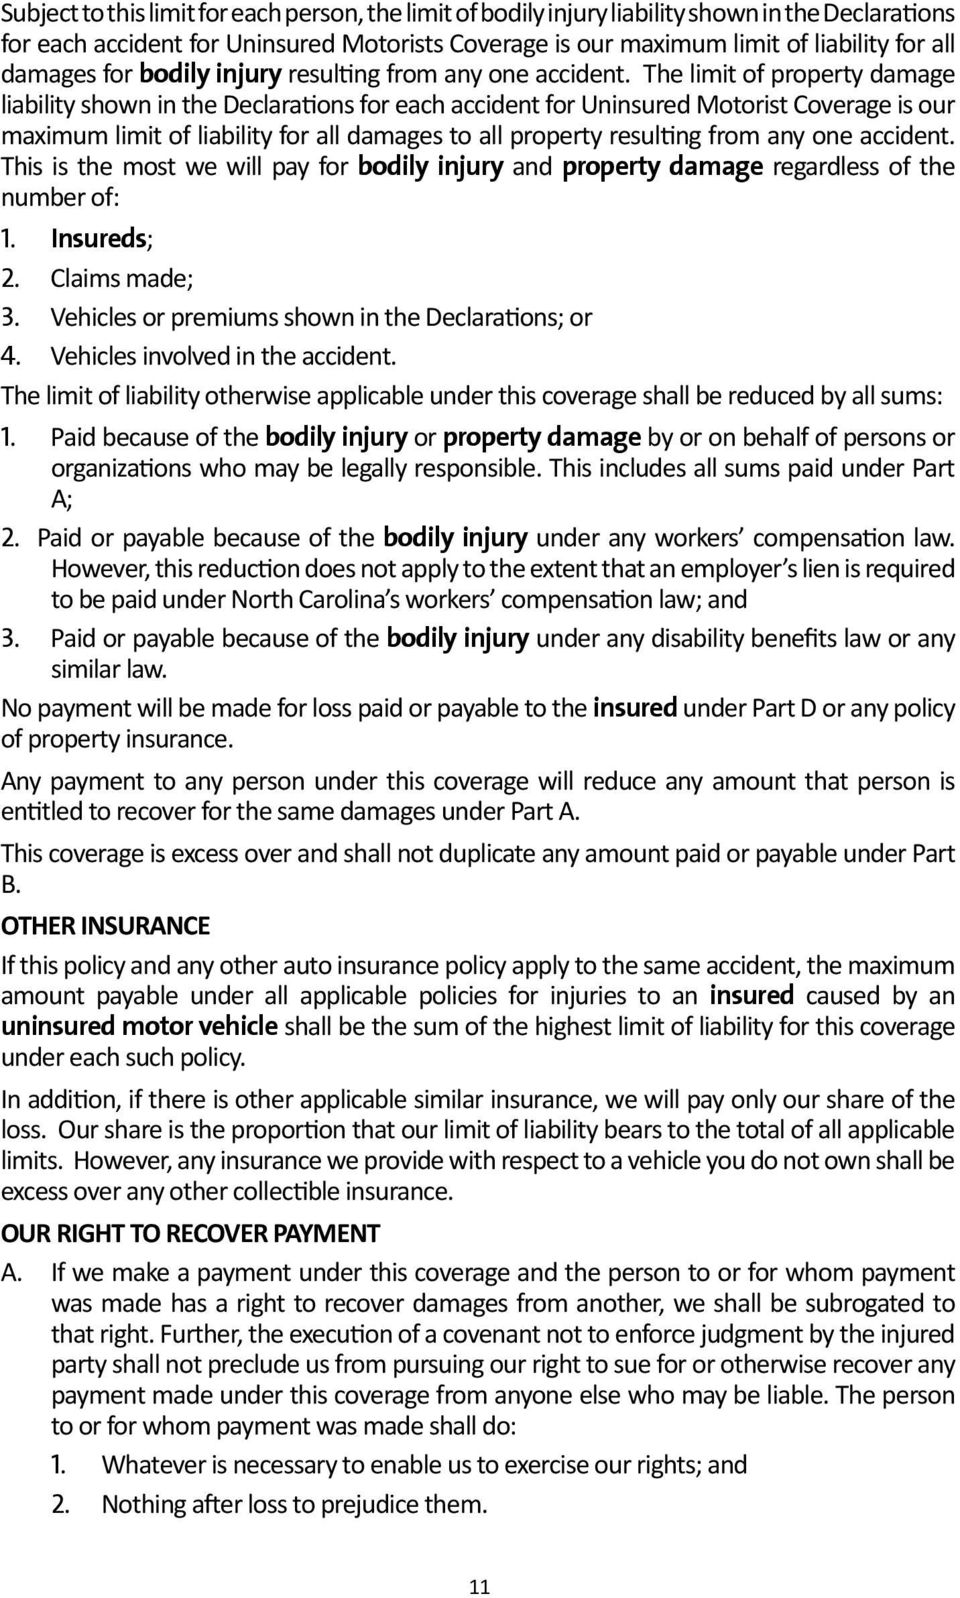 The limit of property damage liability shown in the Declarations for each accident for Uninsured Motorist Coverage is our maximum limit of liability for all damages to all property resulting from any